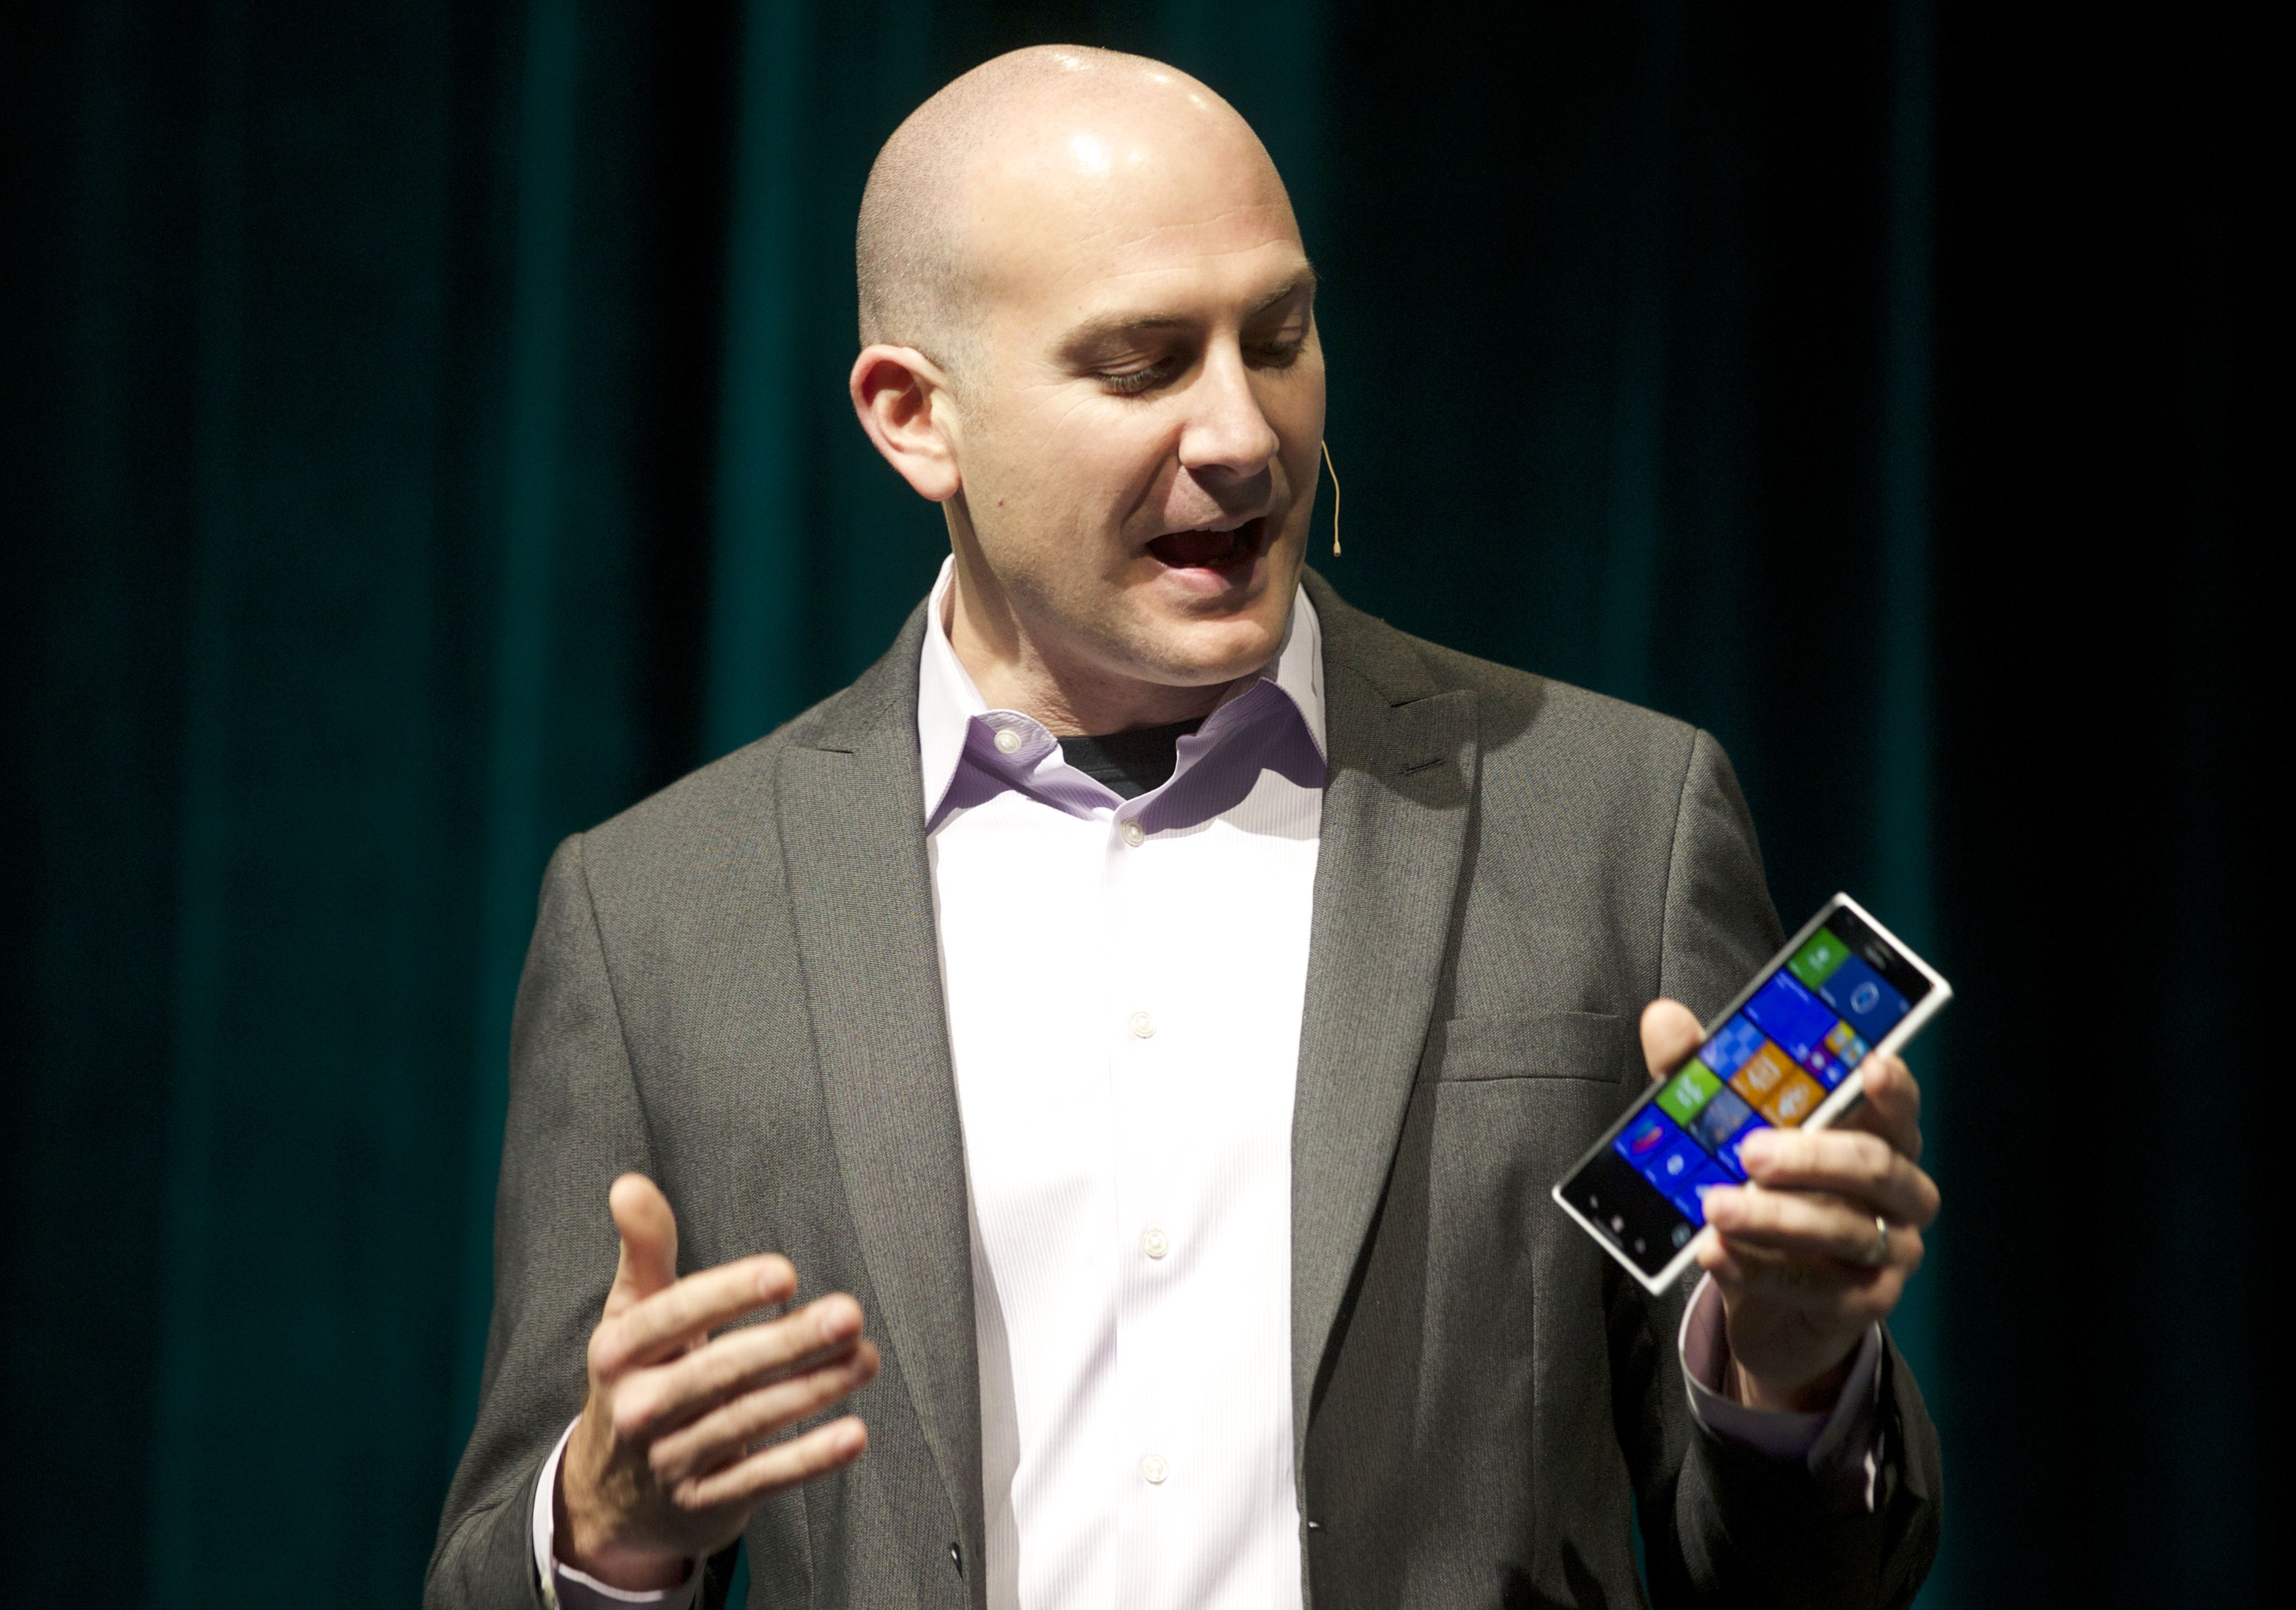 Microsoft Executive Communications Manager Ryan Asdourian demonstrates a six-inch Nokia phablet running Windows software during the Microsoft Shareholders Annual Meeting November 19, 2013 in Bellevue, Washington. Asdourian demonstrated several devices running windows operating systems and software.  (Stephen Brashear/Getty Images/AFP)